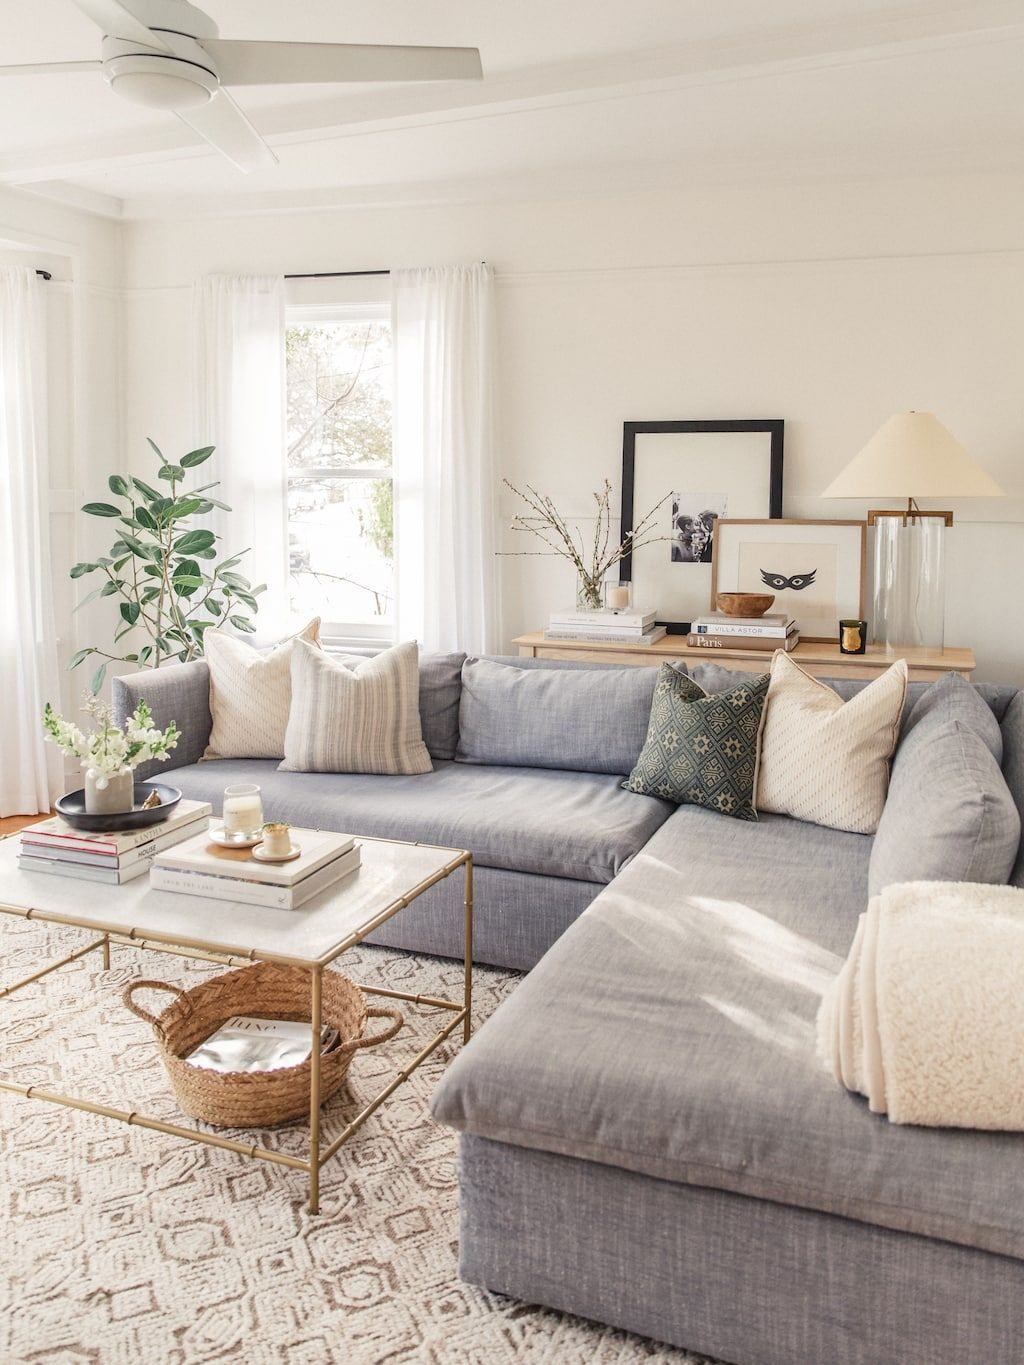 Home Decorating Trends 2021 24 Popular Interior Decor Ideas Country Living Room Furniture Small Apartment Living Room Farm House Living Room